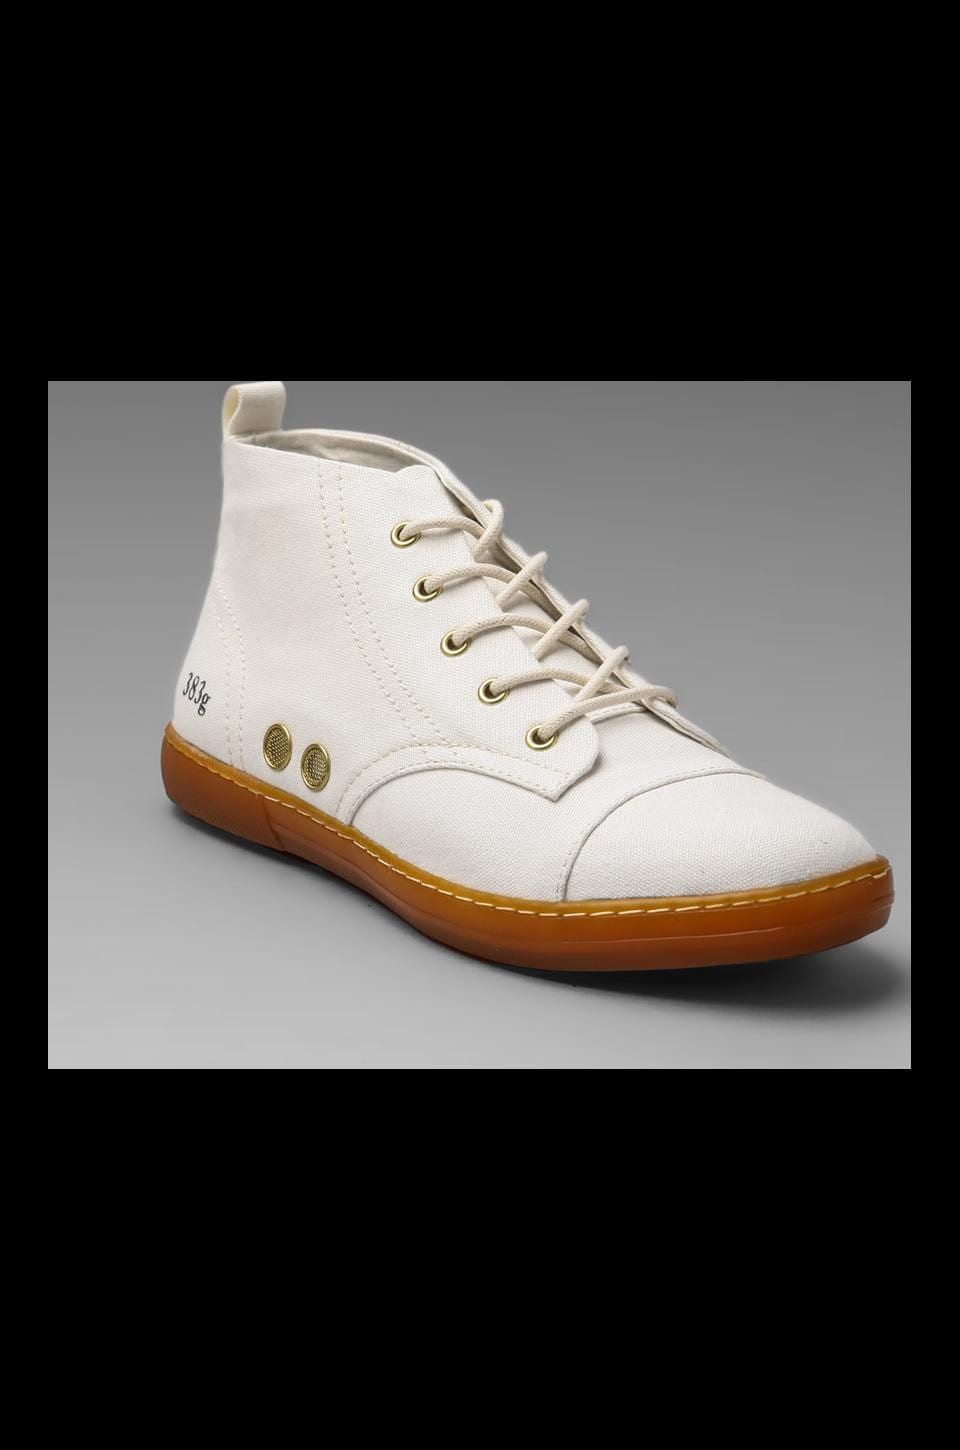 Gram 383G Cotton Canvas in White w/ Brown Gum Sole